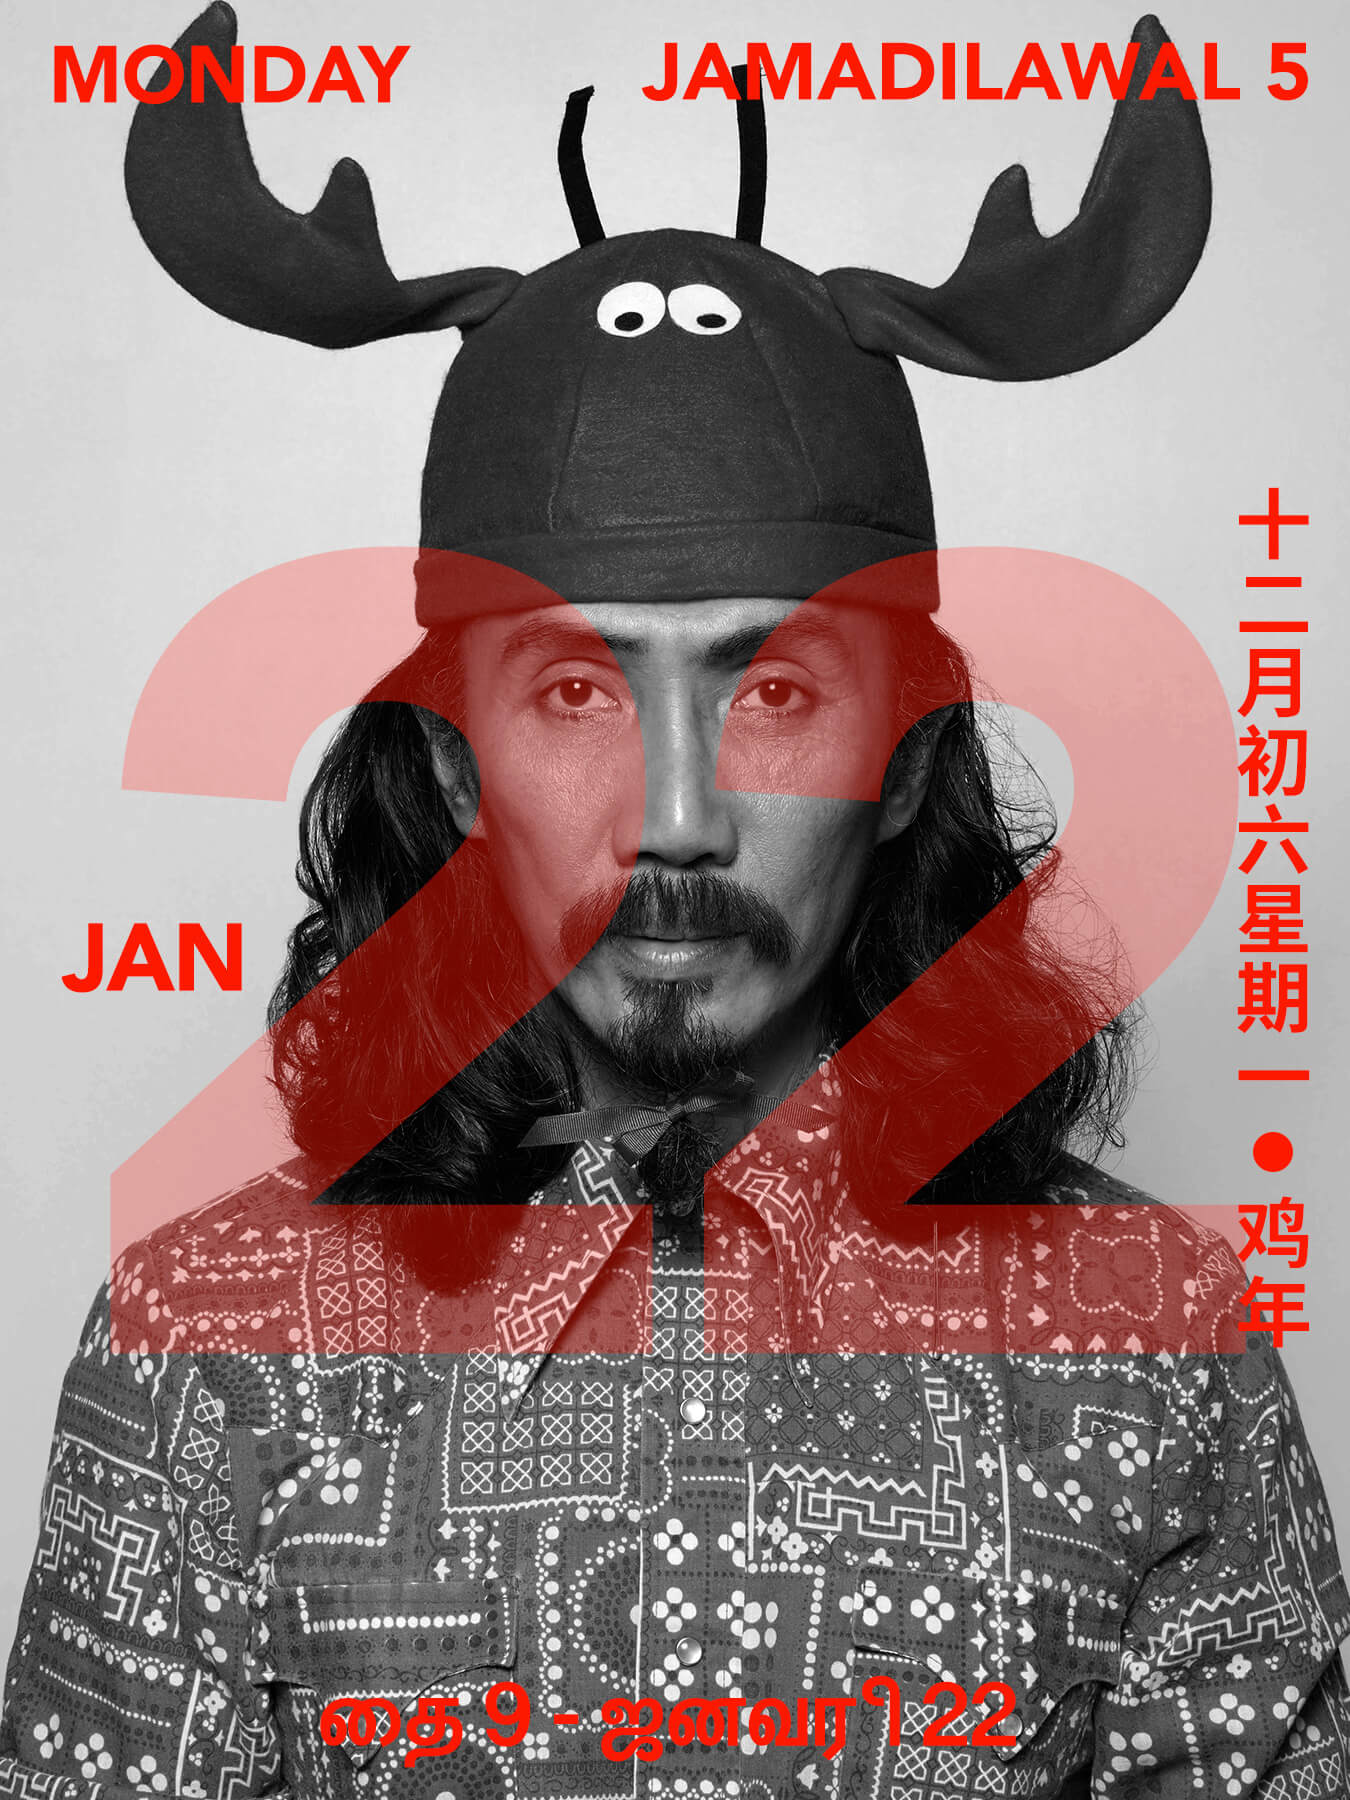 21 Jan 2018 Derong has a crab hat on!